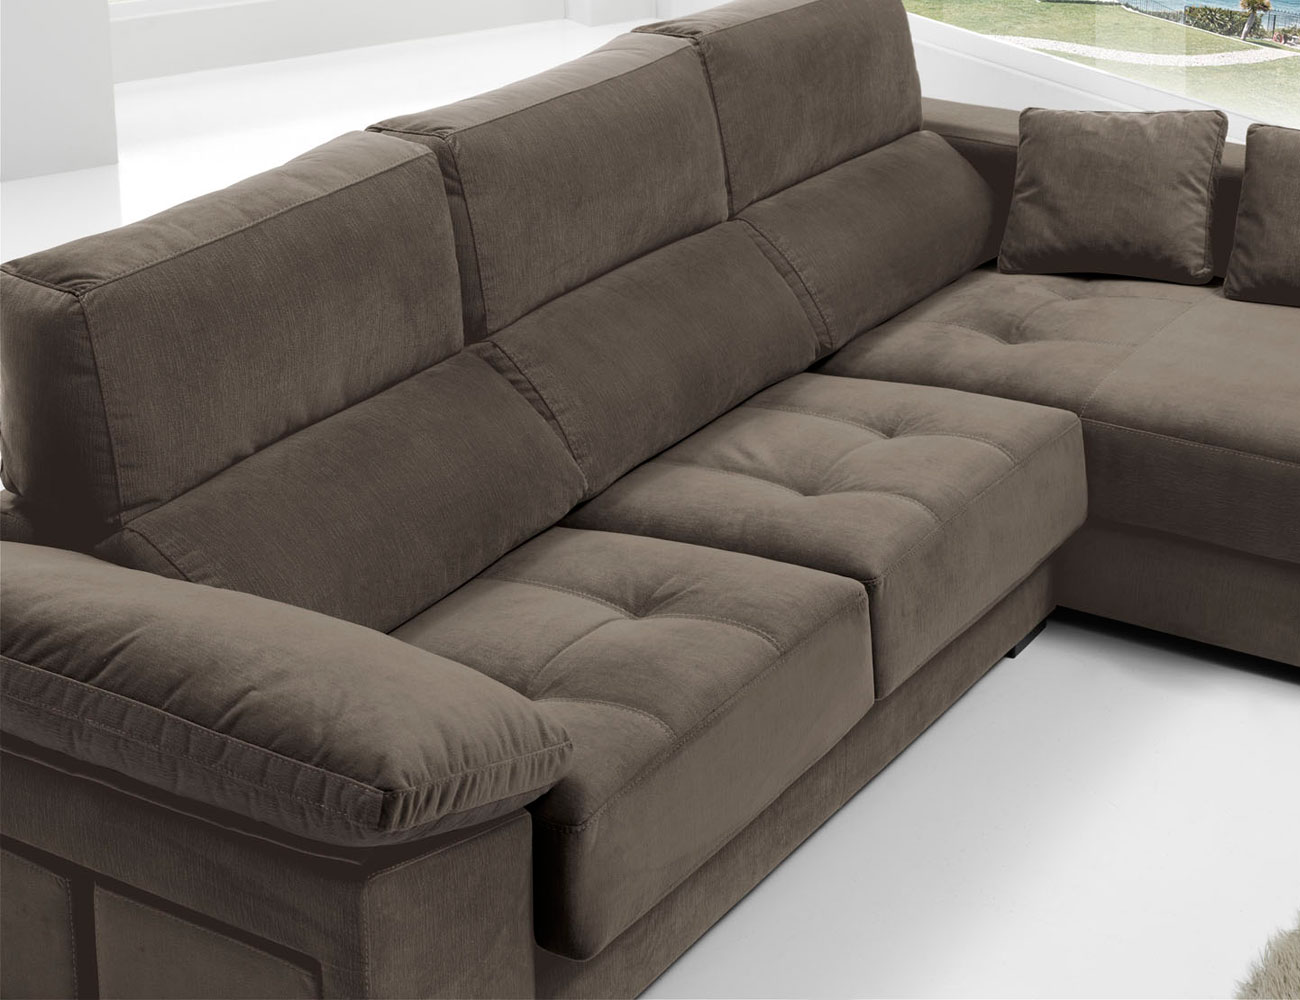 Sofa chaiselongue anti manchas bering pouf 287